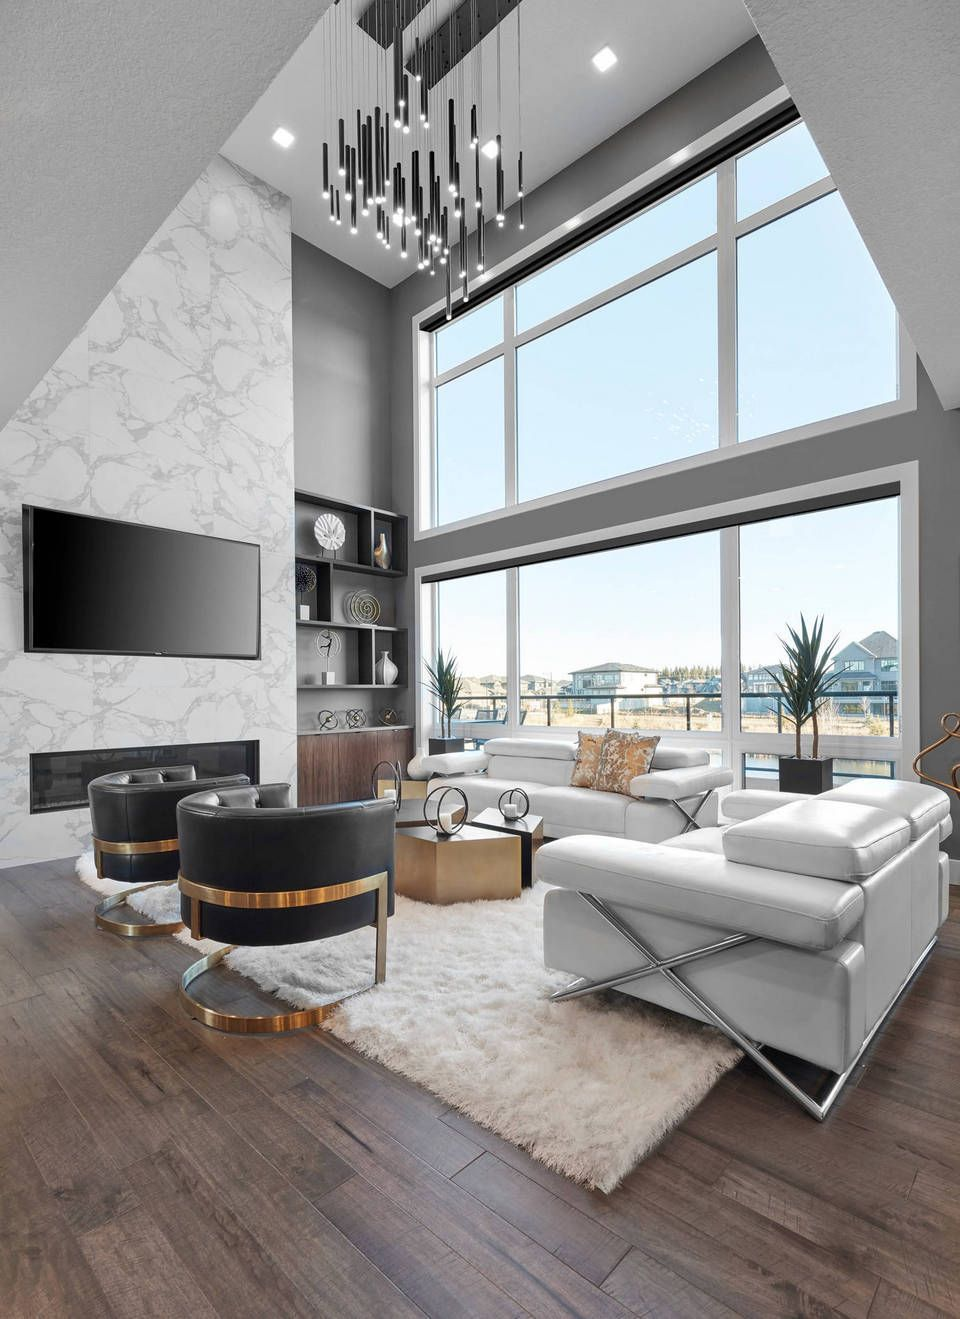 Contemporary Hygge Design Ideas In 2020 Best Modern House Design Classy Living Room Modern Houses Interior